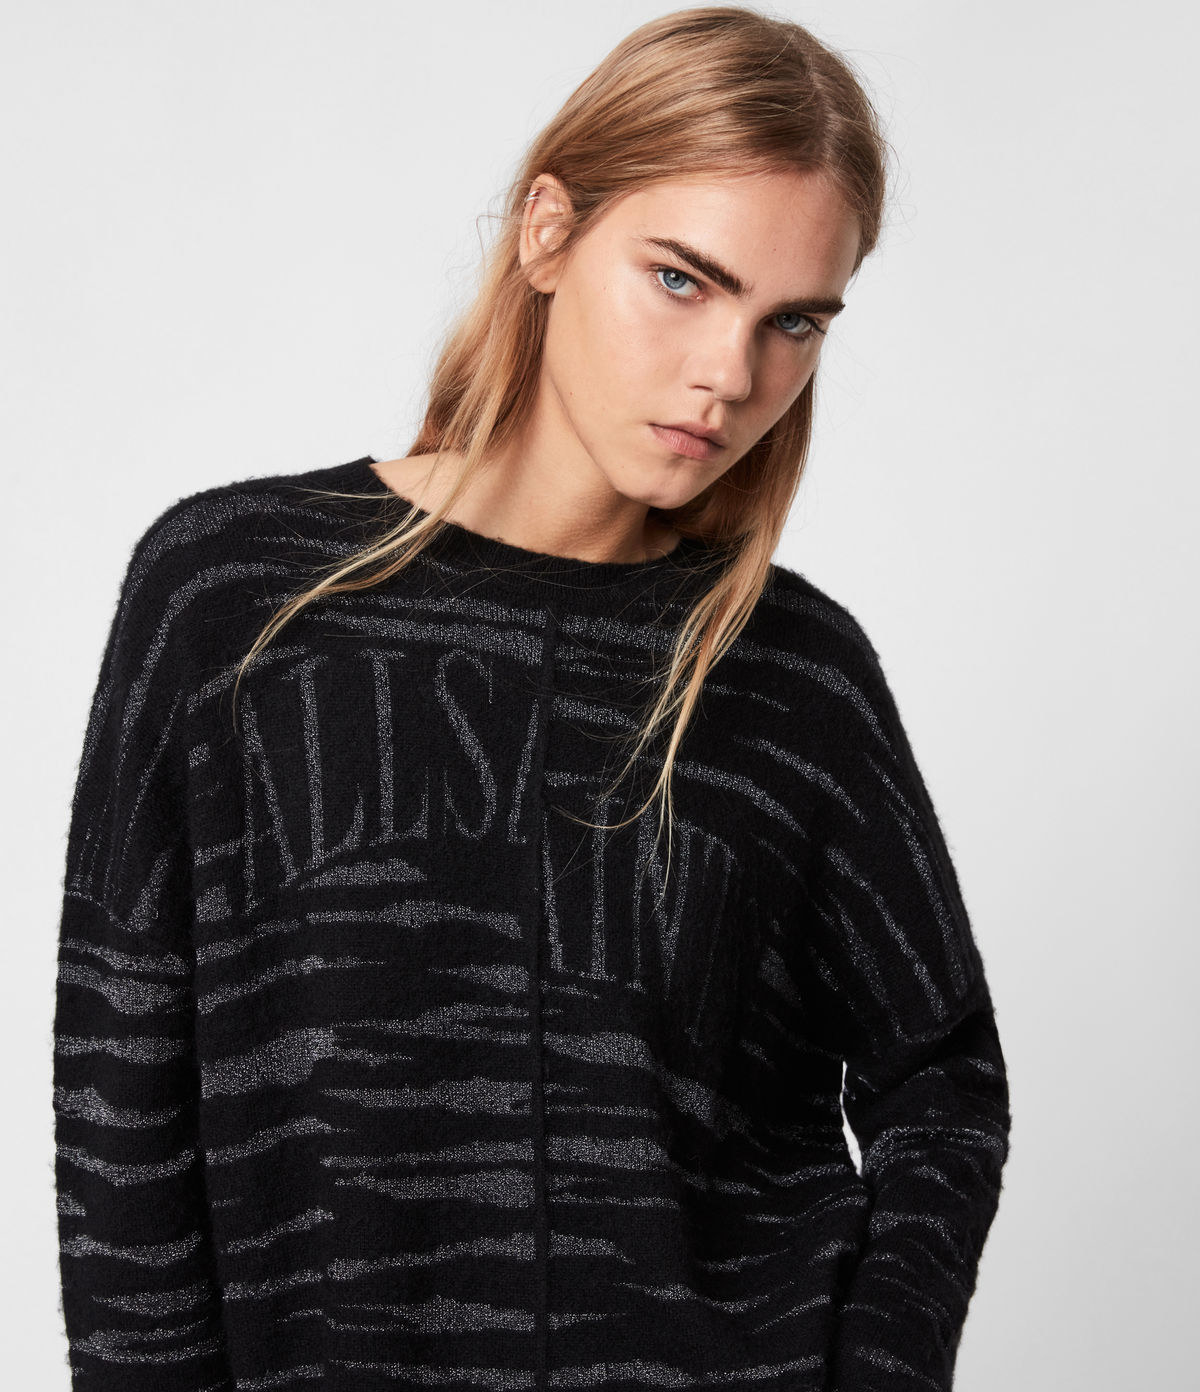 a model in a black and grey tiger print sweater with all saints written on the front